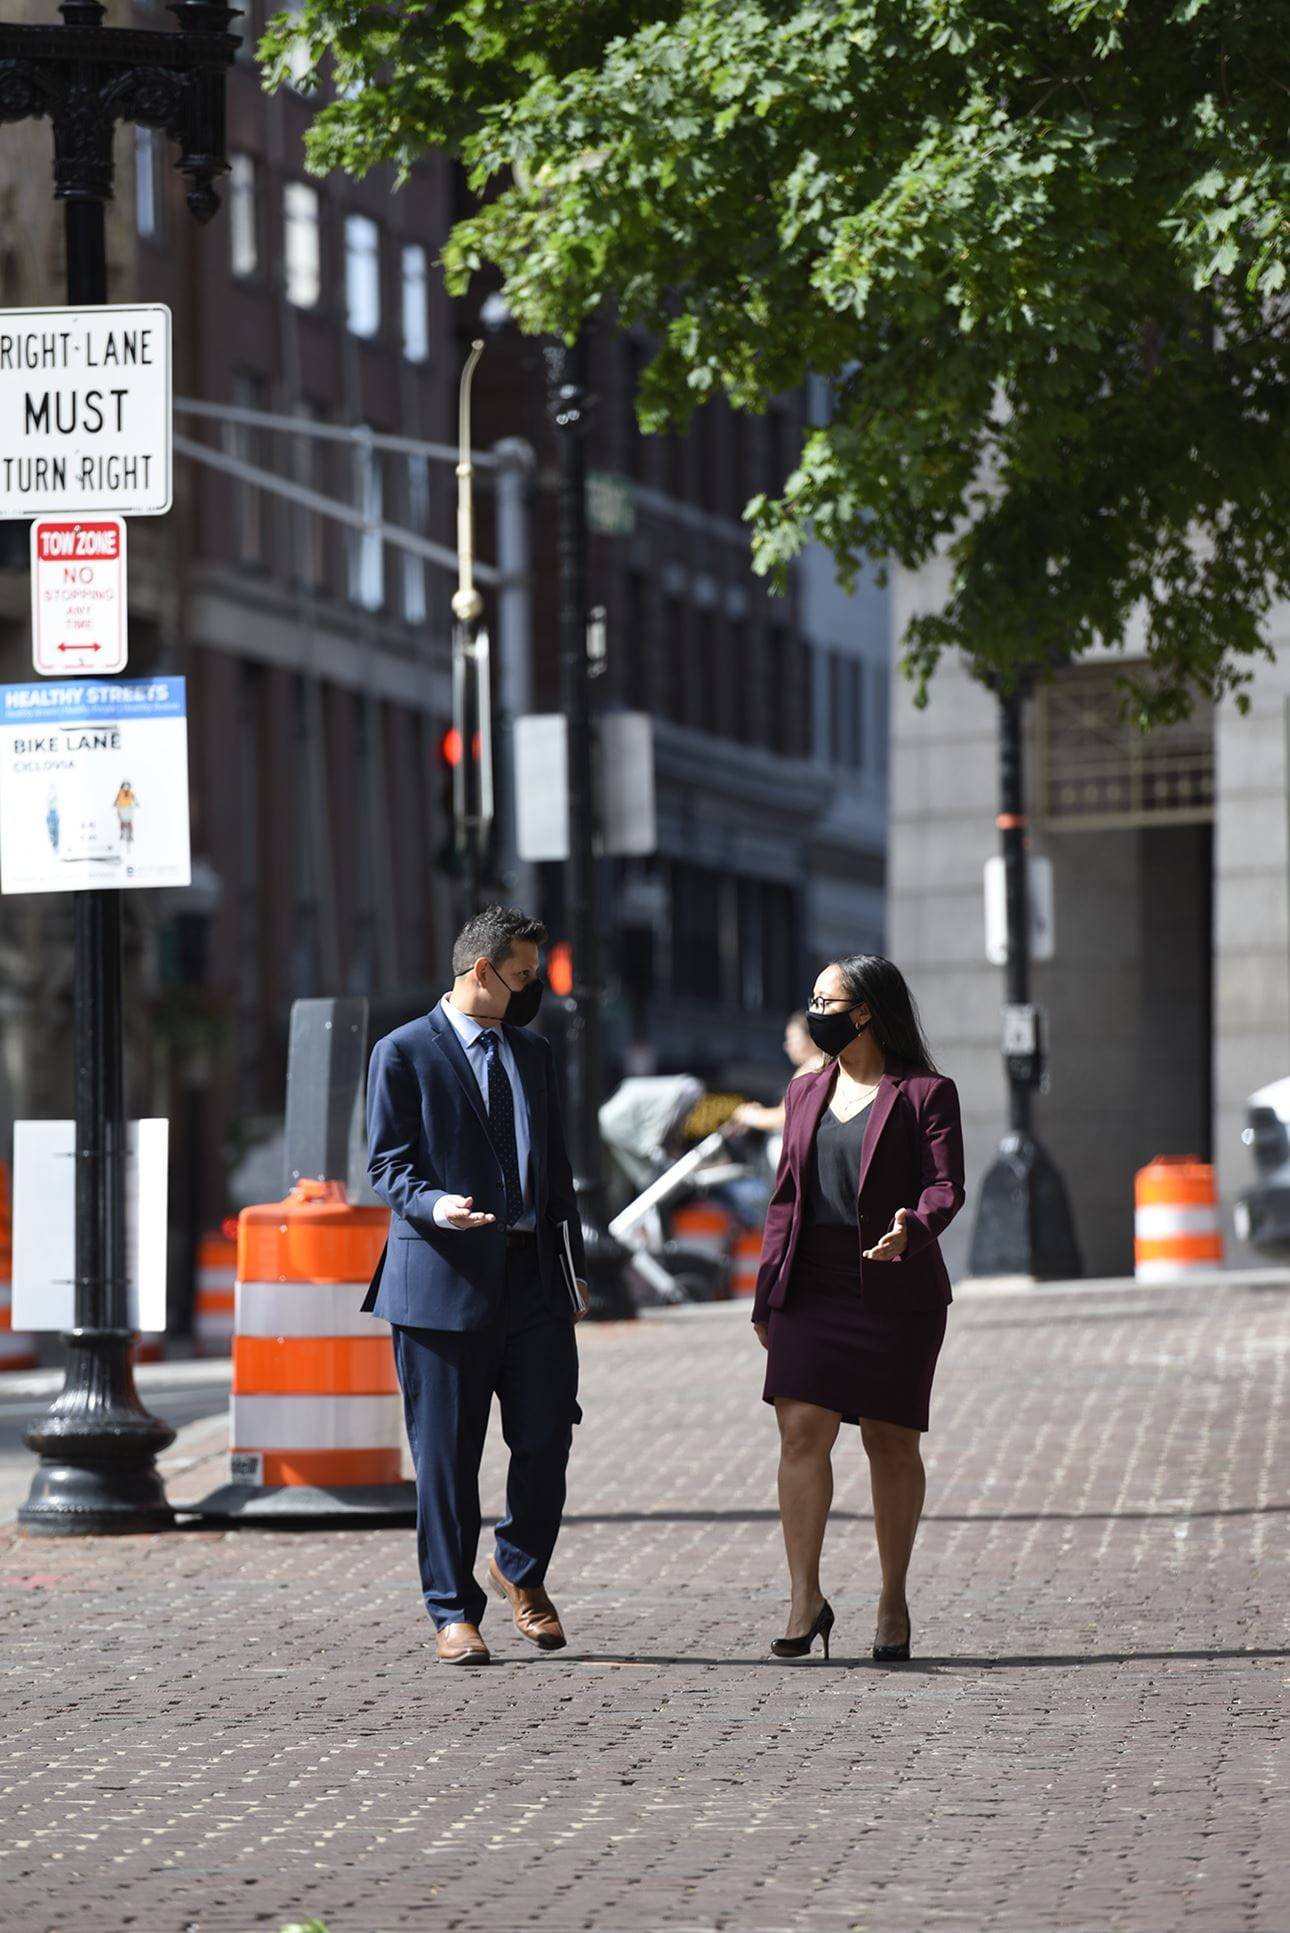 Ivan Espinoza Madrigal and Sophia Hall walking next to each other on a brick sidewalk in the city. They are both wearing masks. He's wearing a dark blue suit and she's wearing a dark purple suit jacket and skirt. They're walking towards the camera and facing each other, gesturing as if having a conversation.